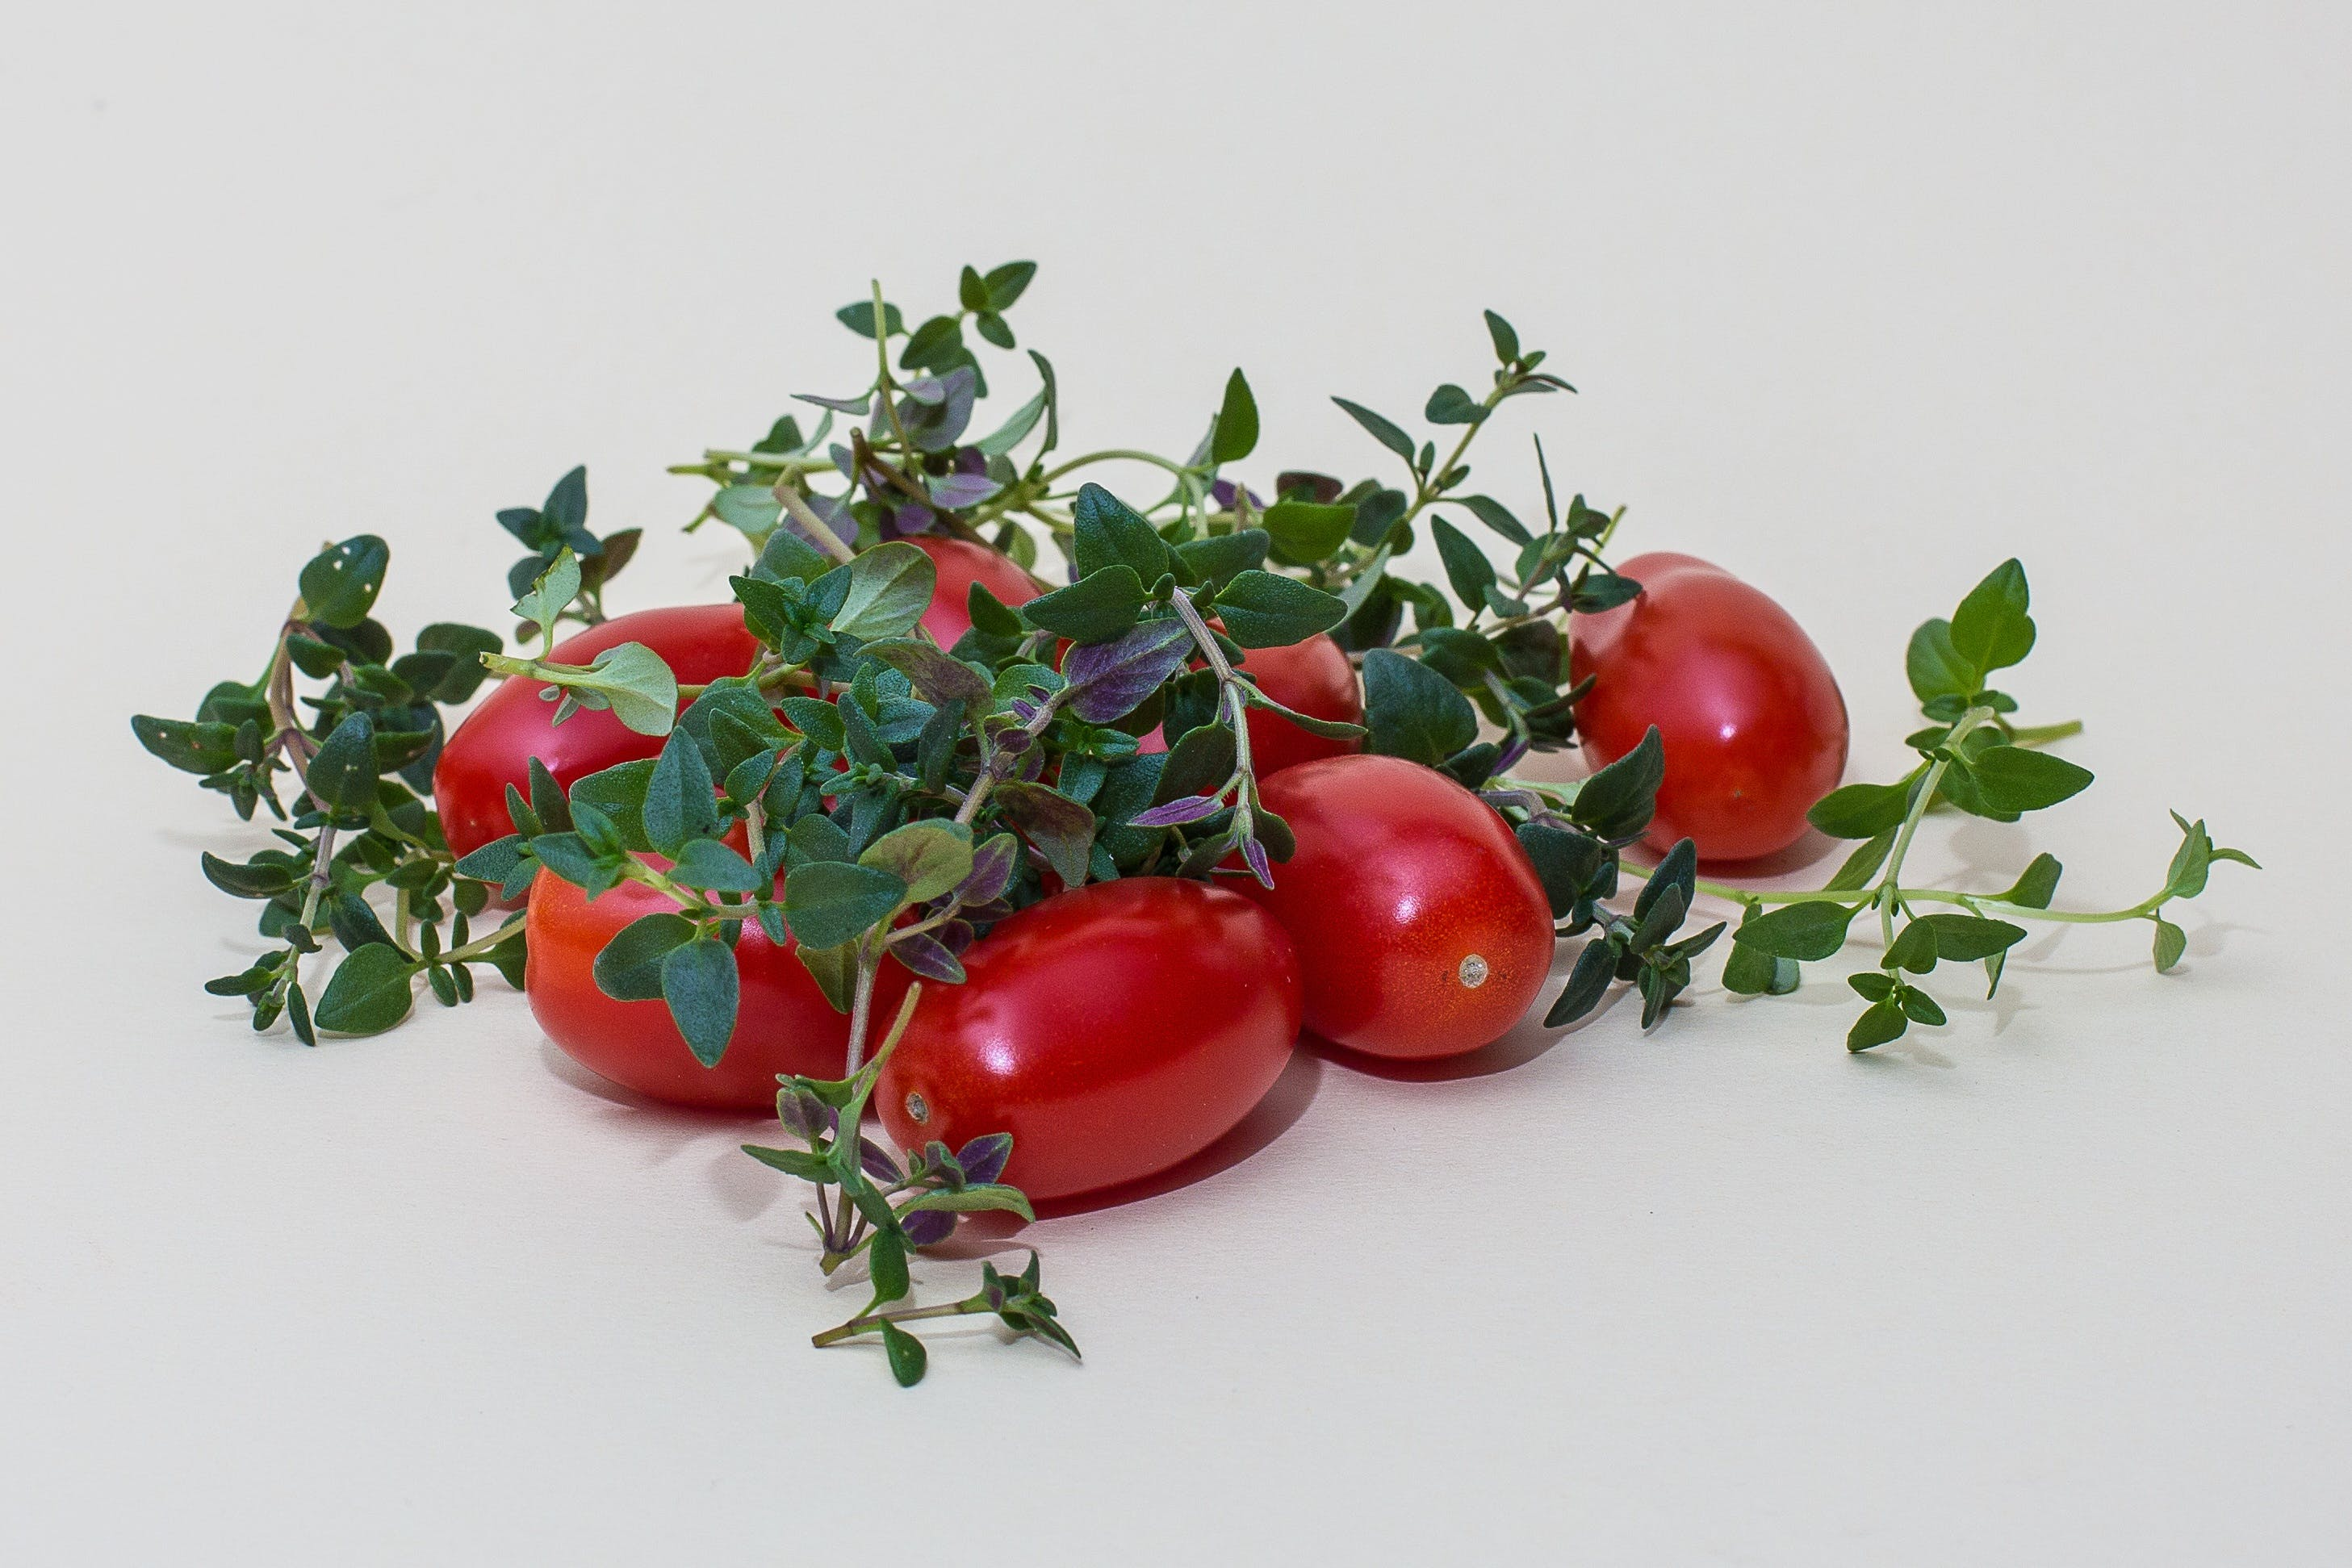 Free stock photo of tomatoes, herbs, cook, herb